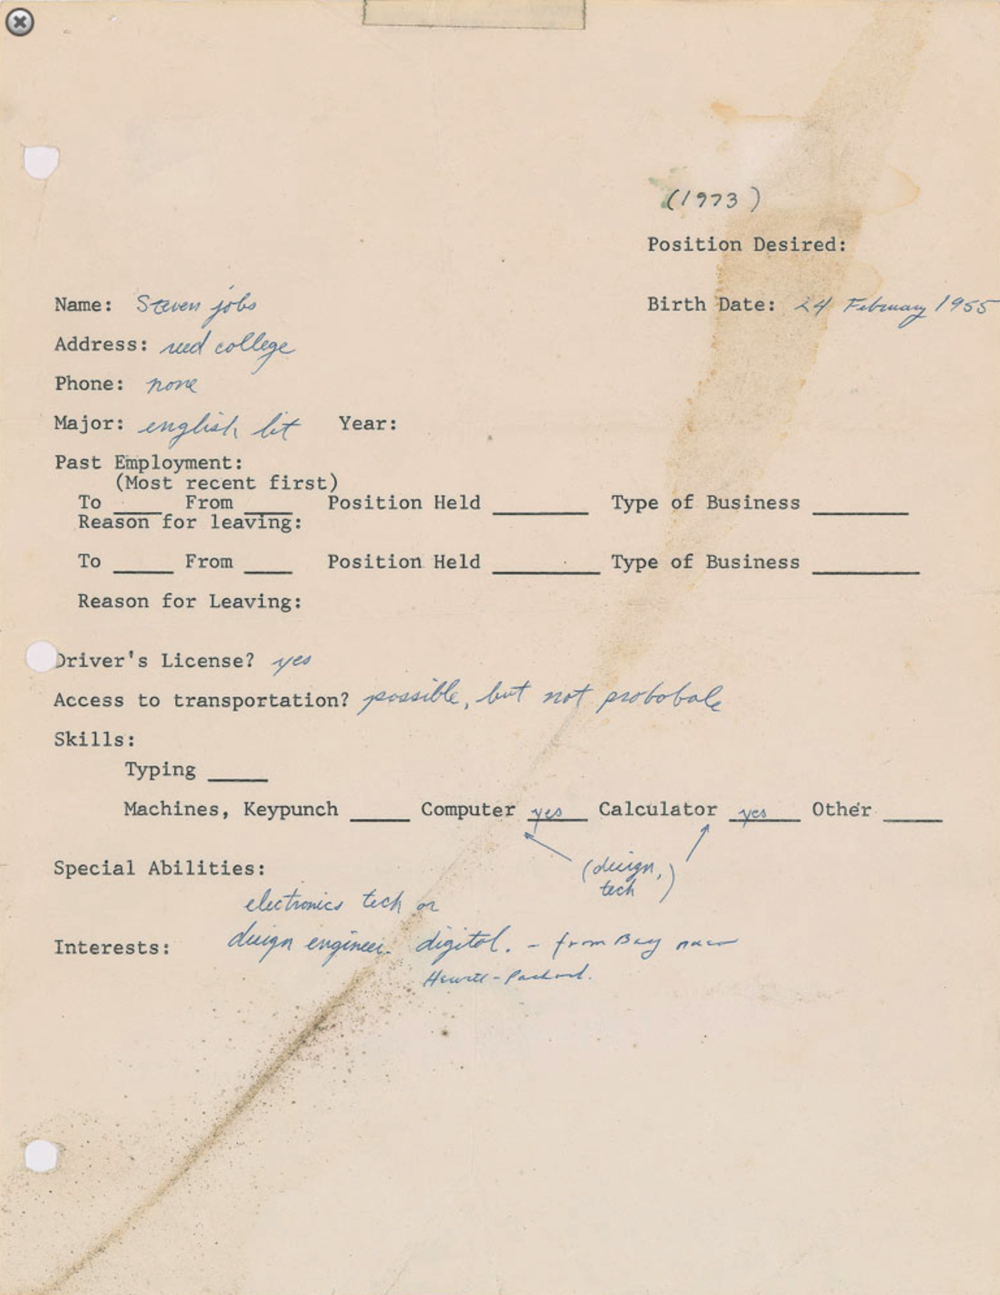 The original of this employment application filled out by Steve Jobs in 1973 could be yours!